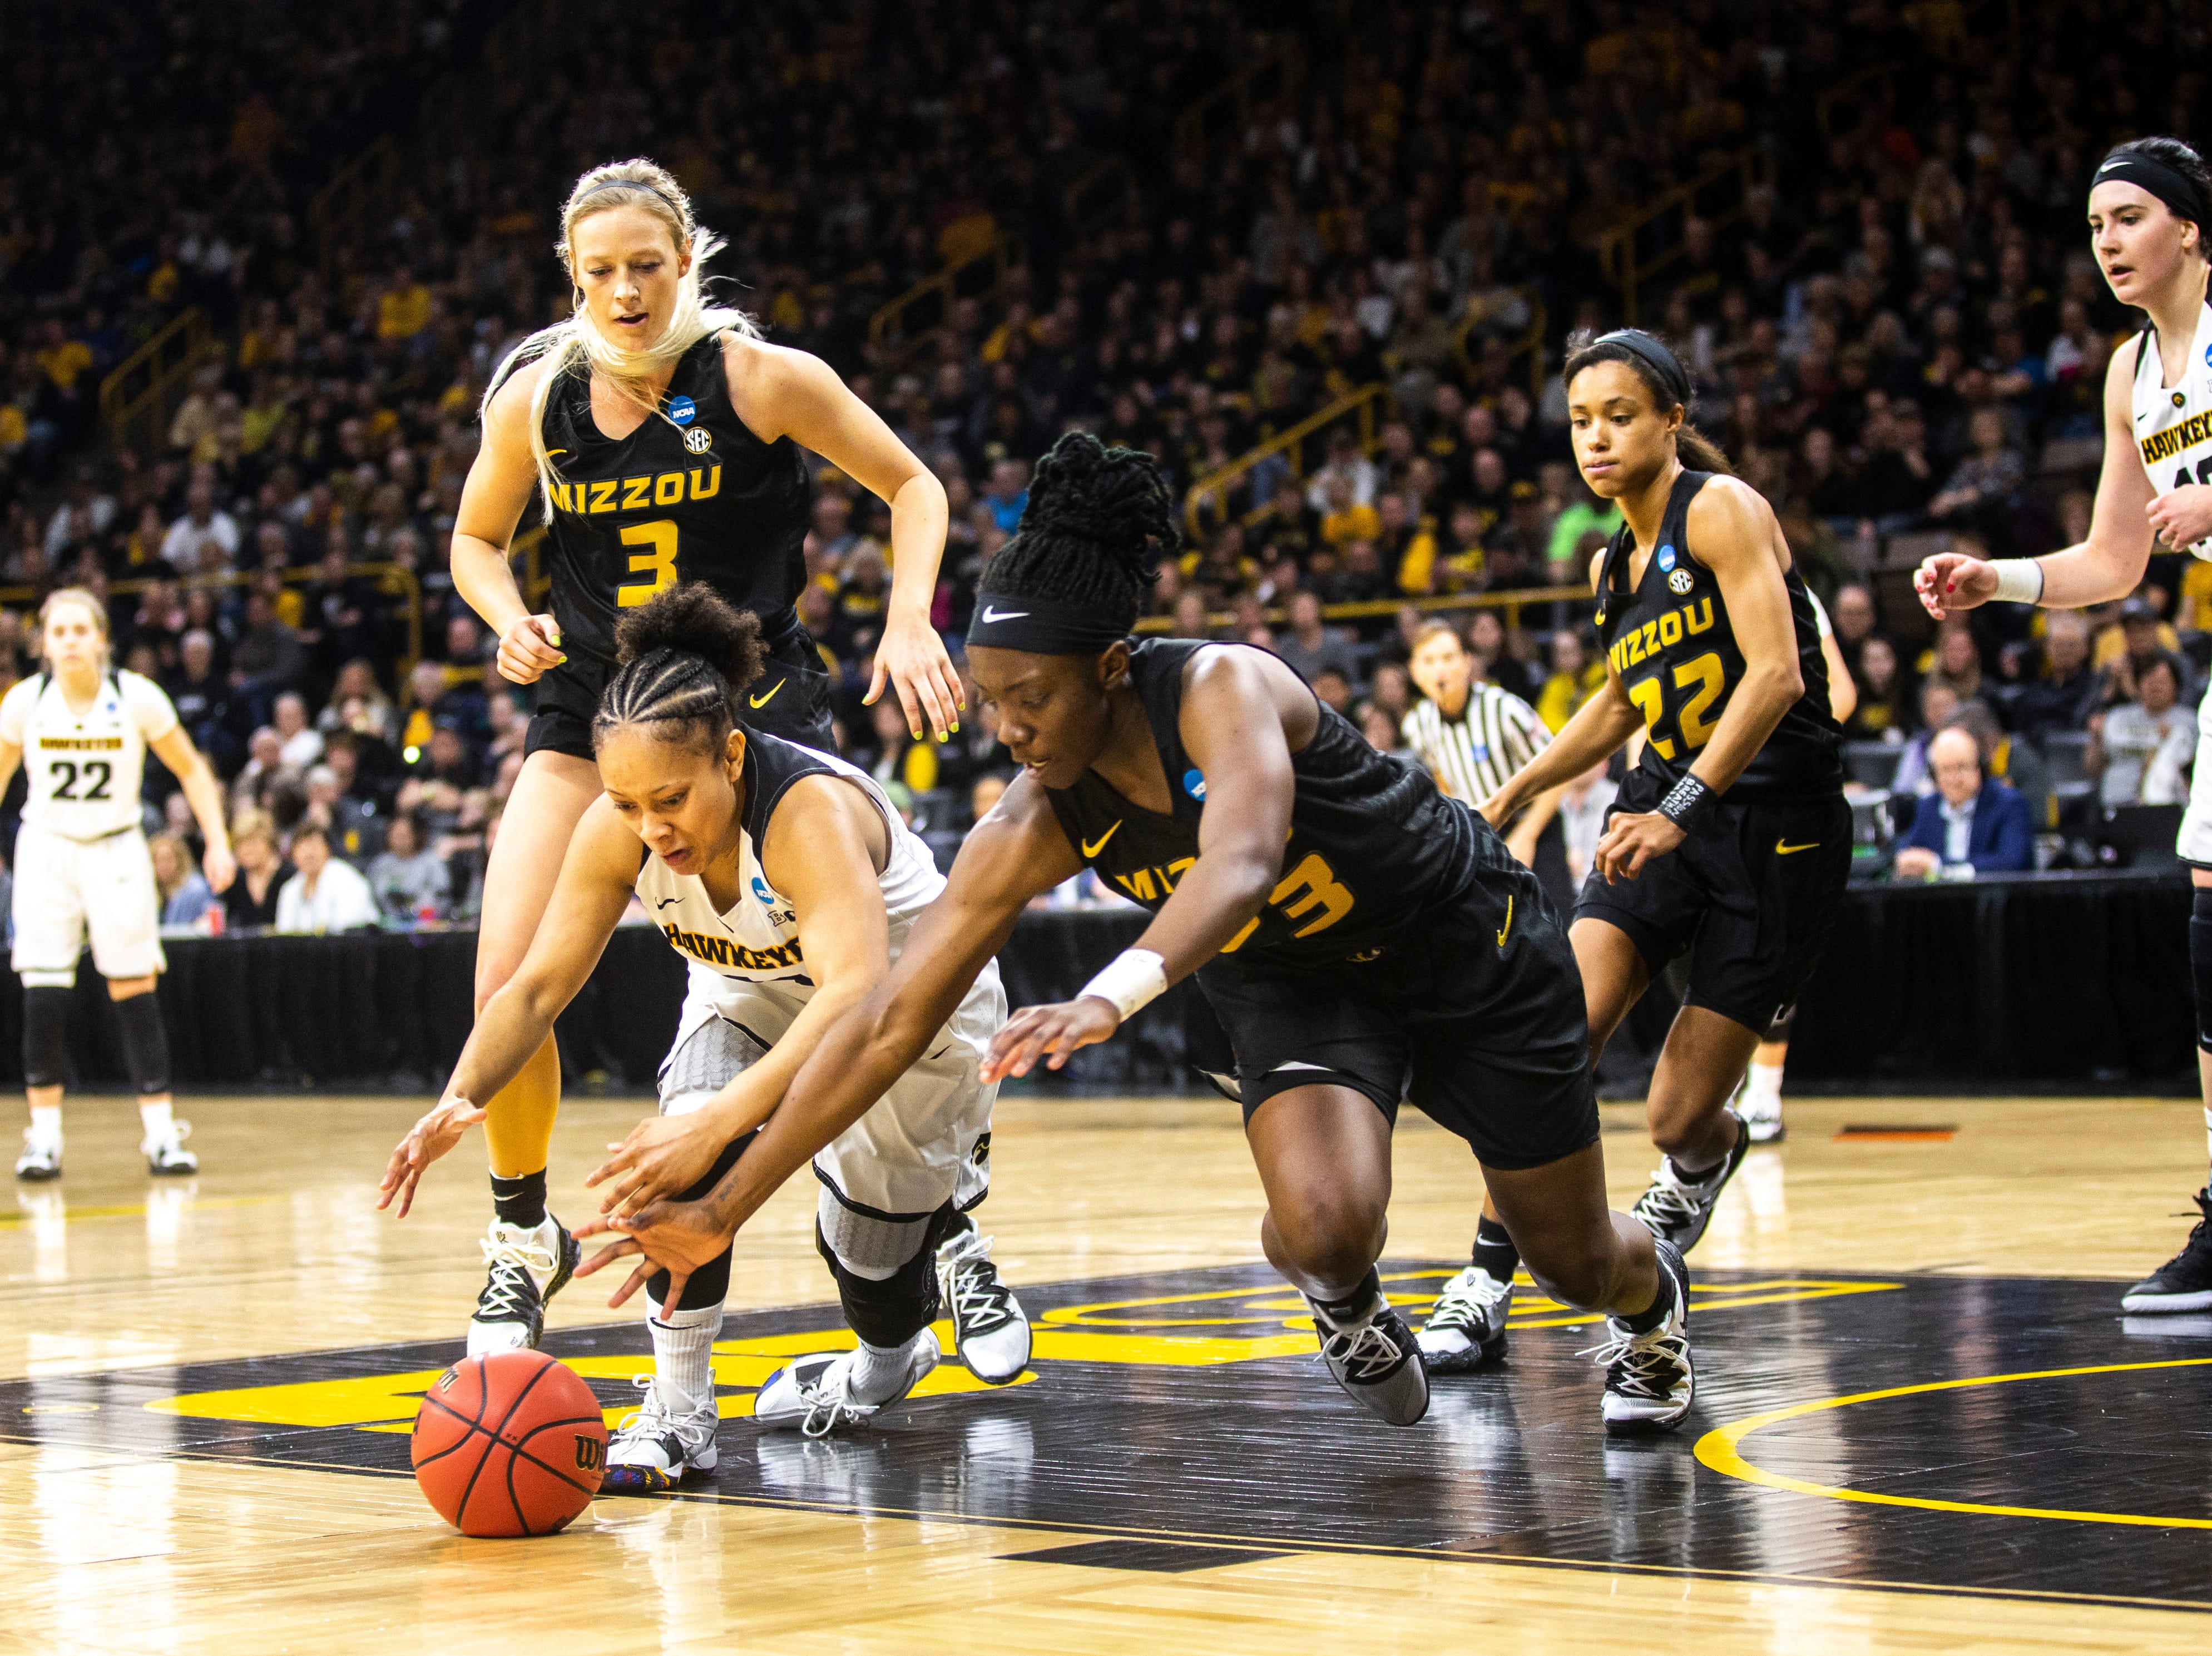 Iowa guard Tania Davis (11) dives for a loose ball against Missouri guard Amber Smith (23) during a NCAA women's basketball tournament second-round game, Sunday, March 24, 2019, at Carver-Hawkeye Arena in Iowa City, Iowa.